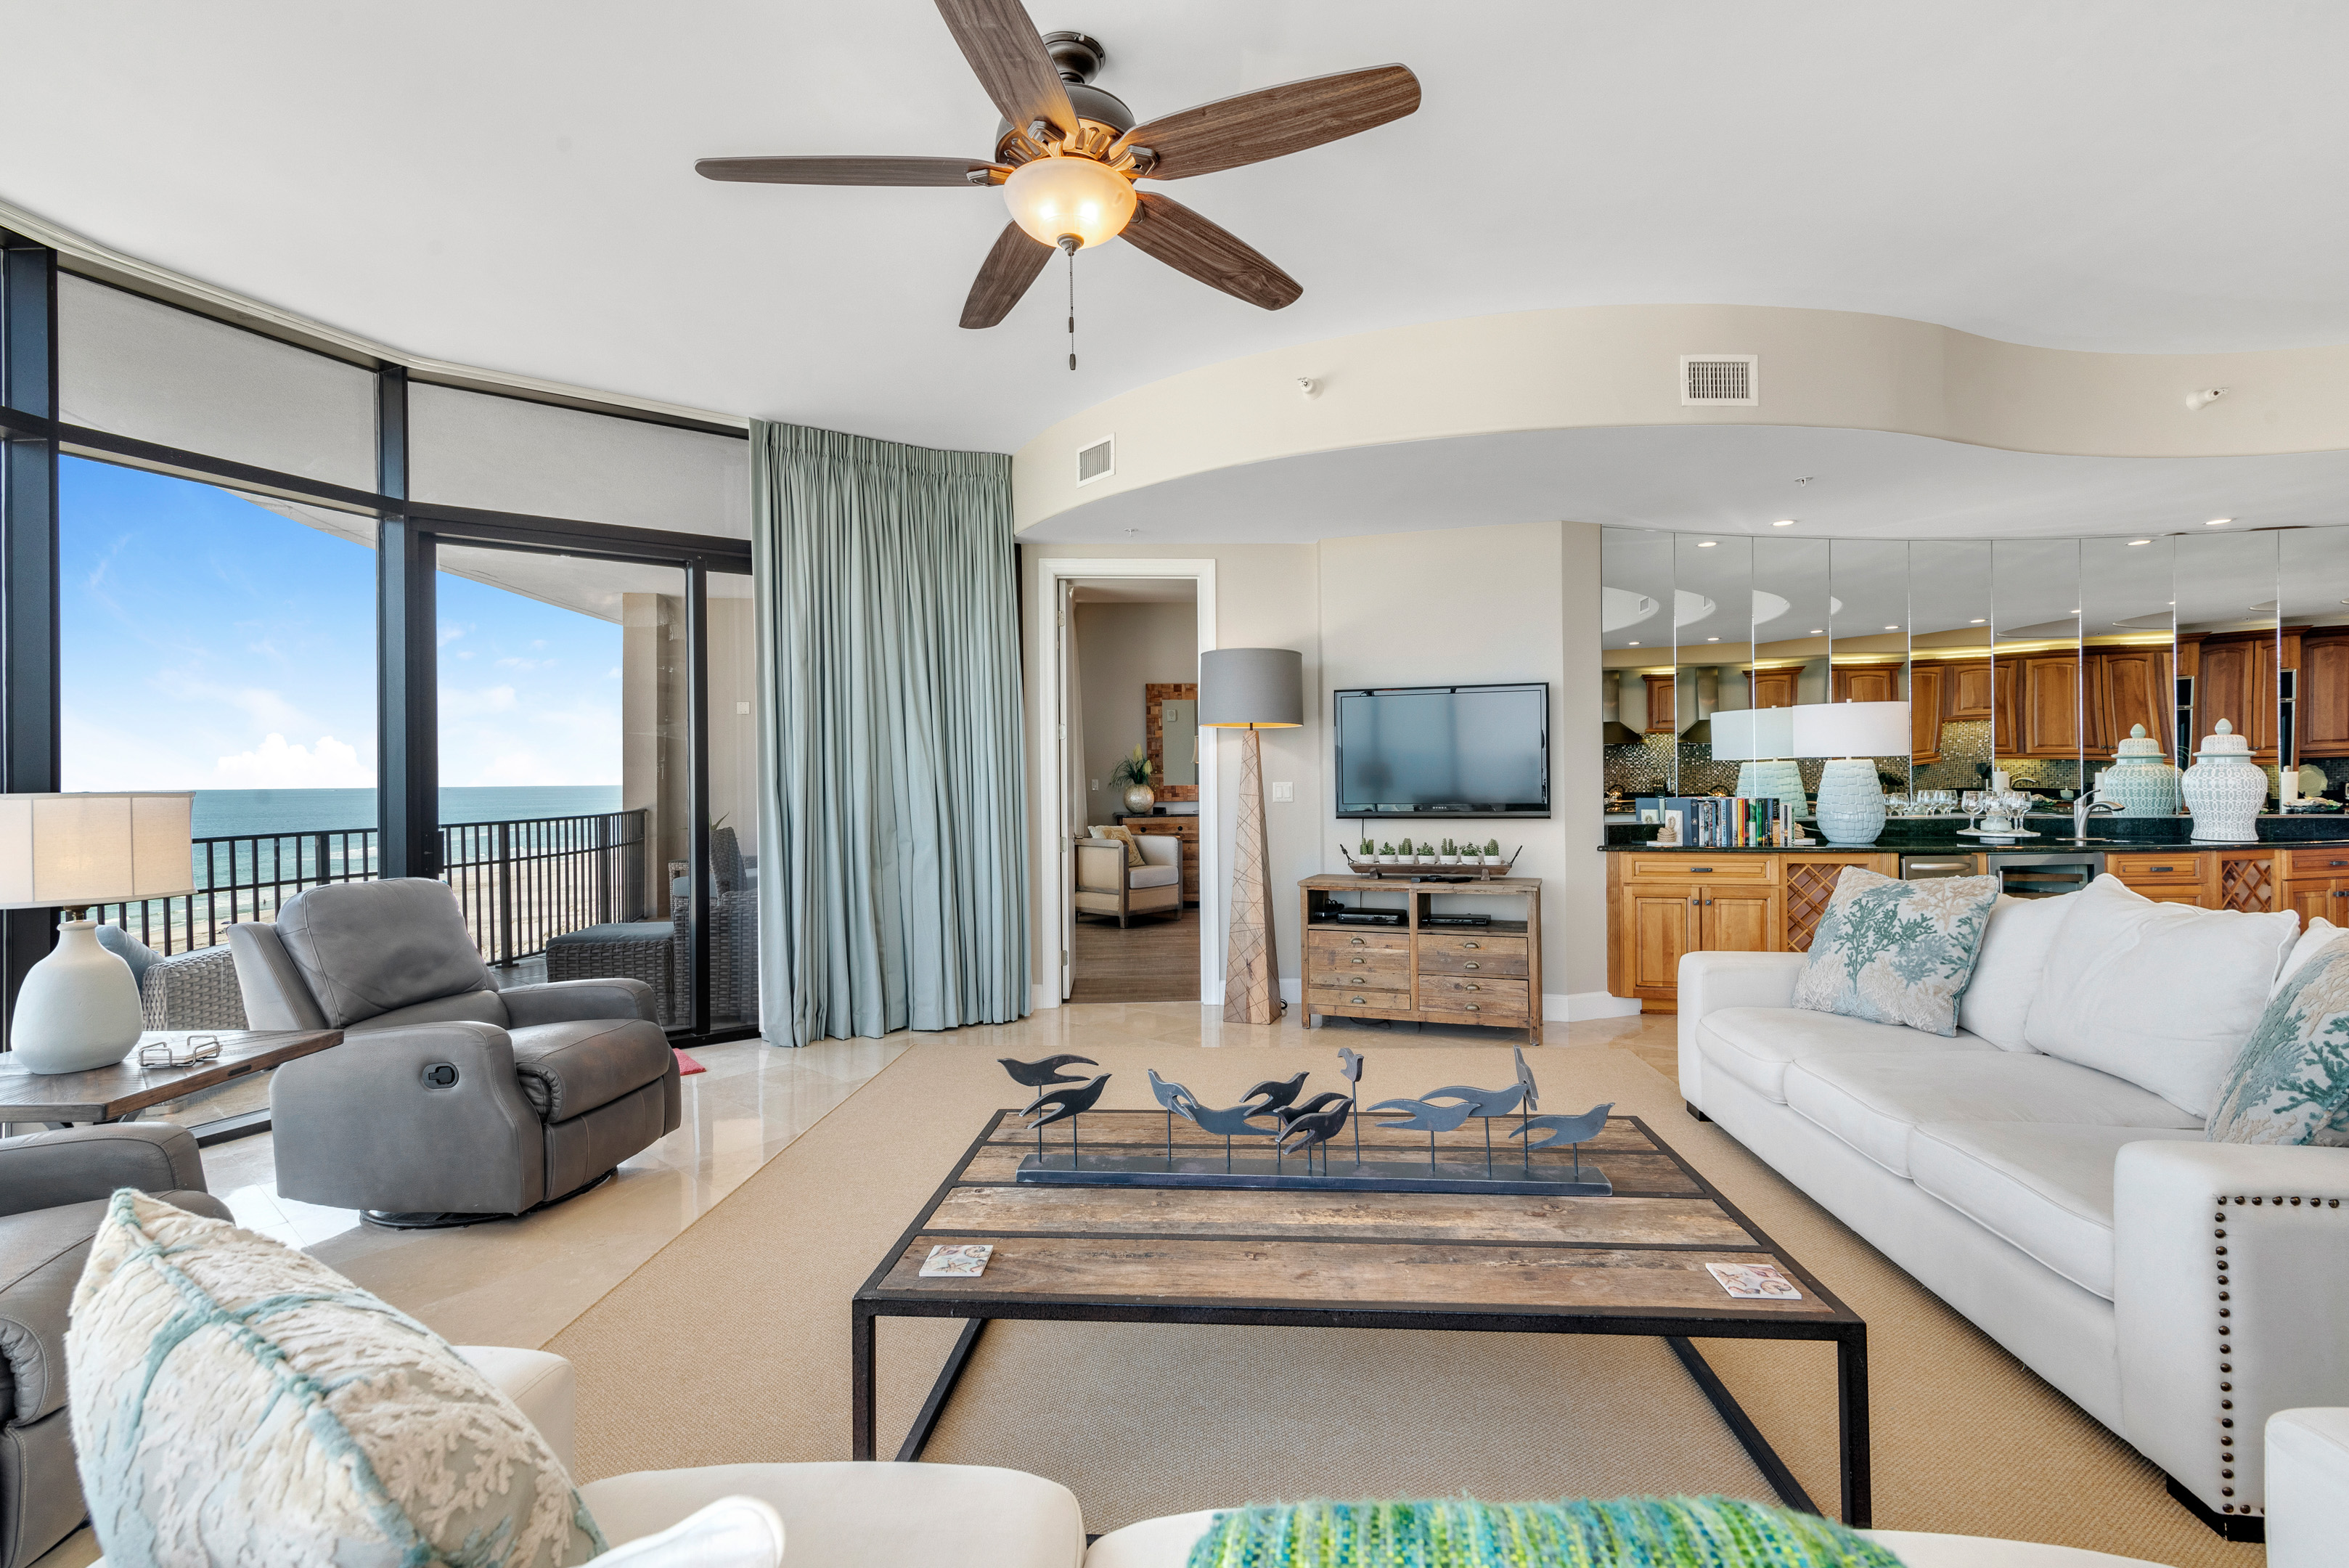 Perdido Key Vacation Rentals with Ocean views that sleep 10